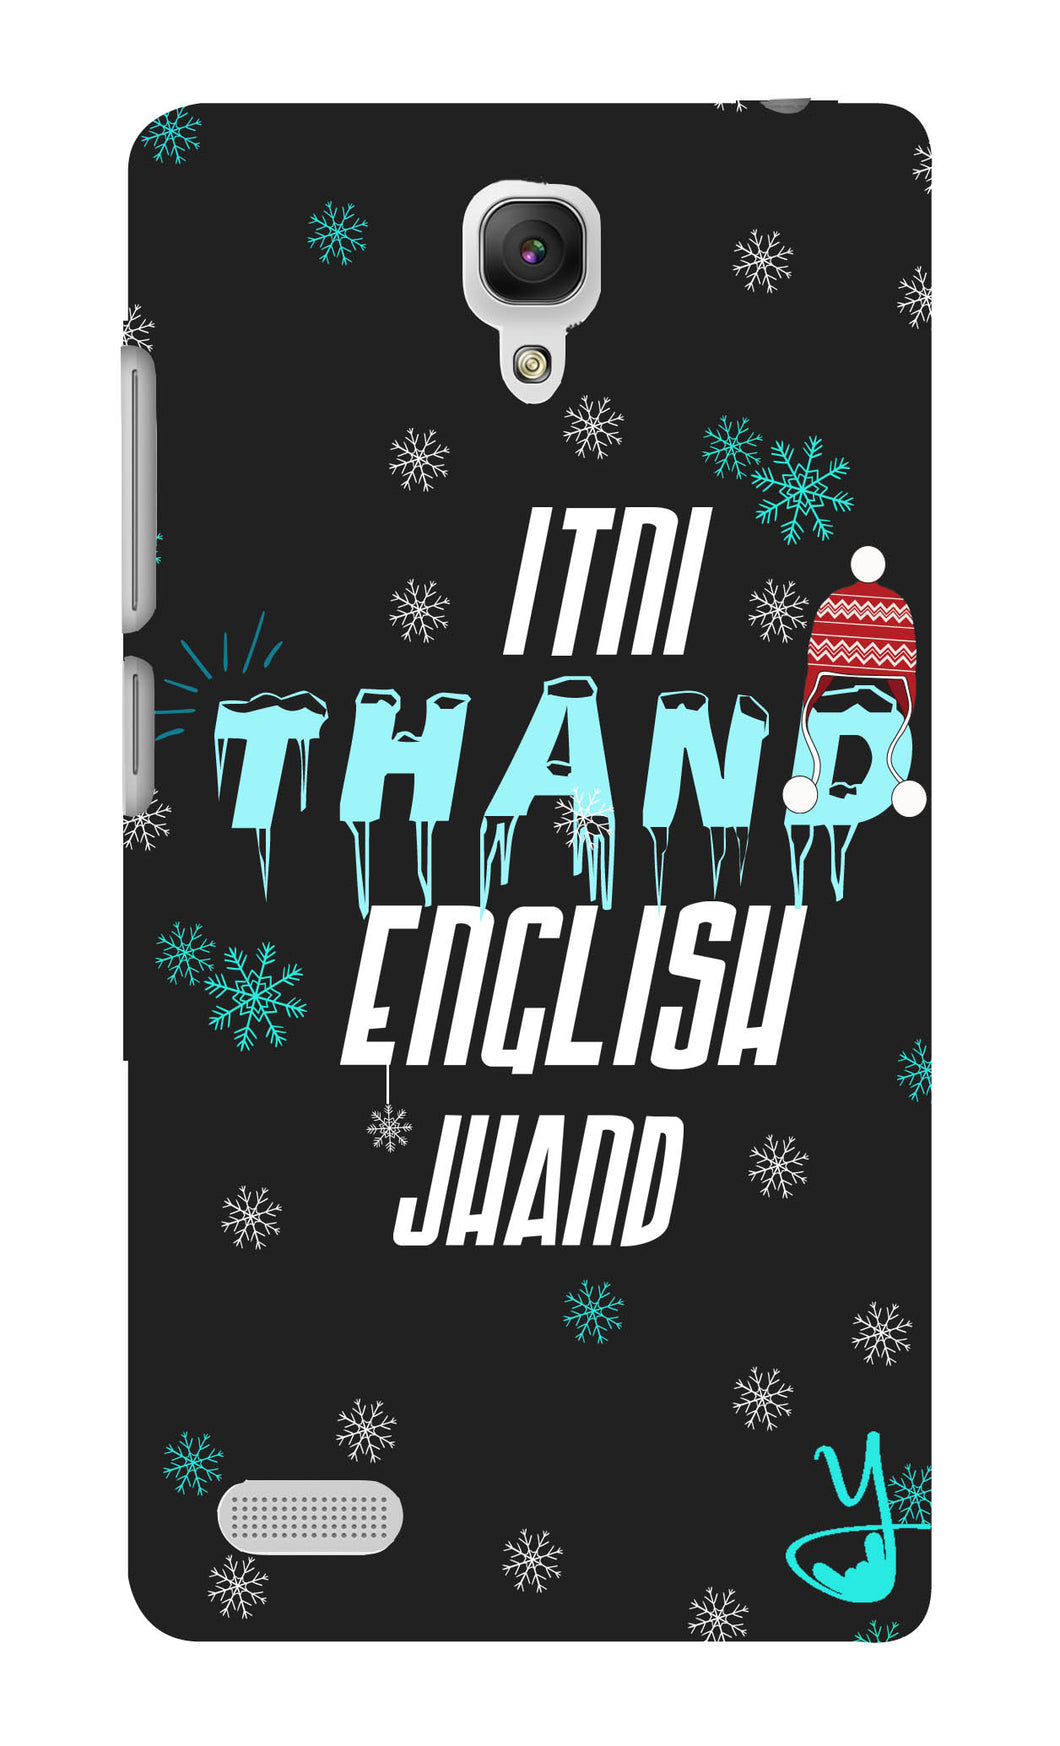 Itni Thand edition for Xiaomi redmi note 4g